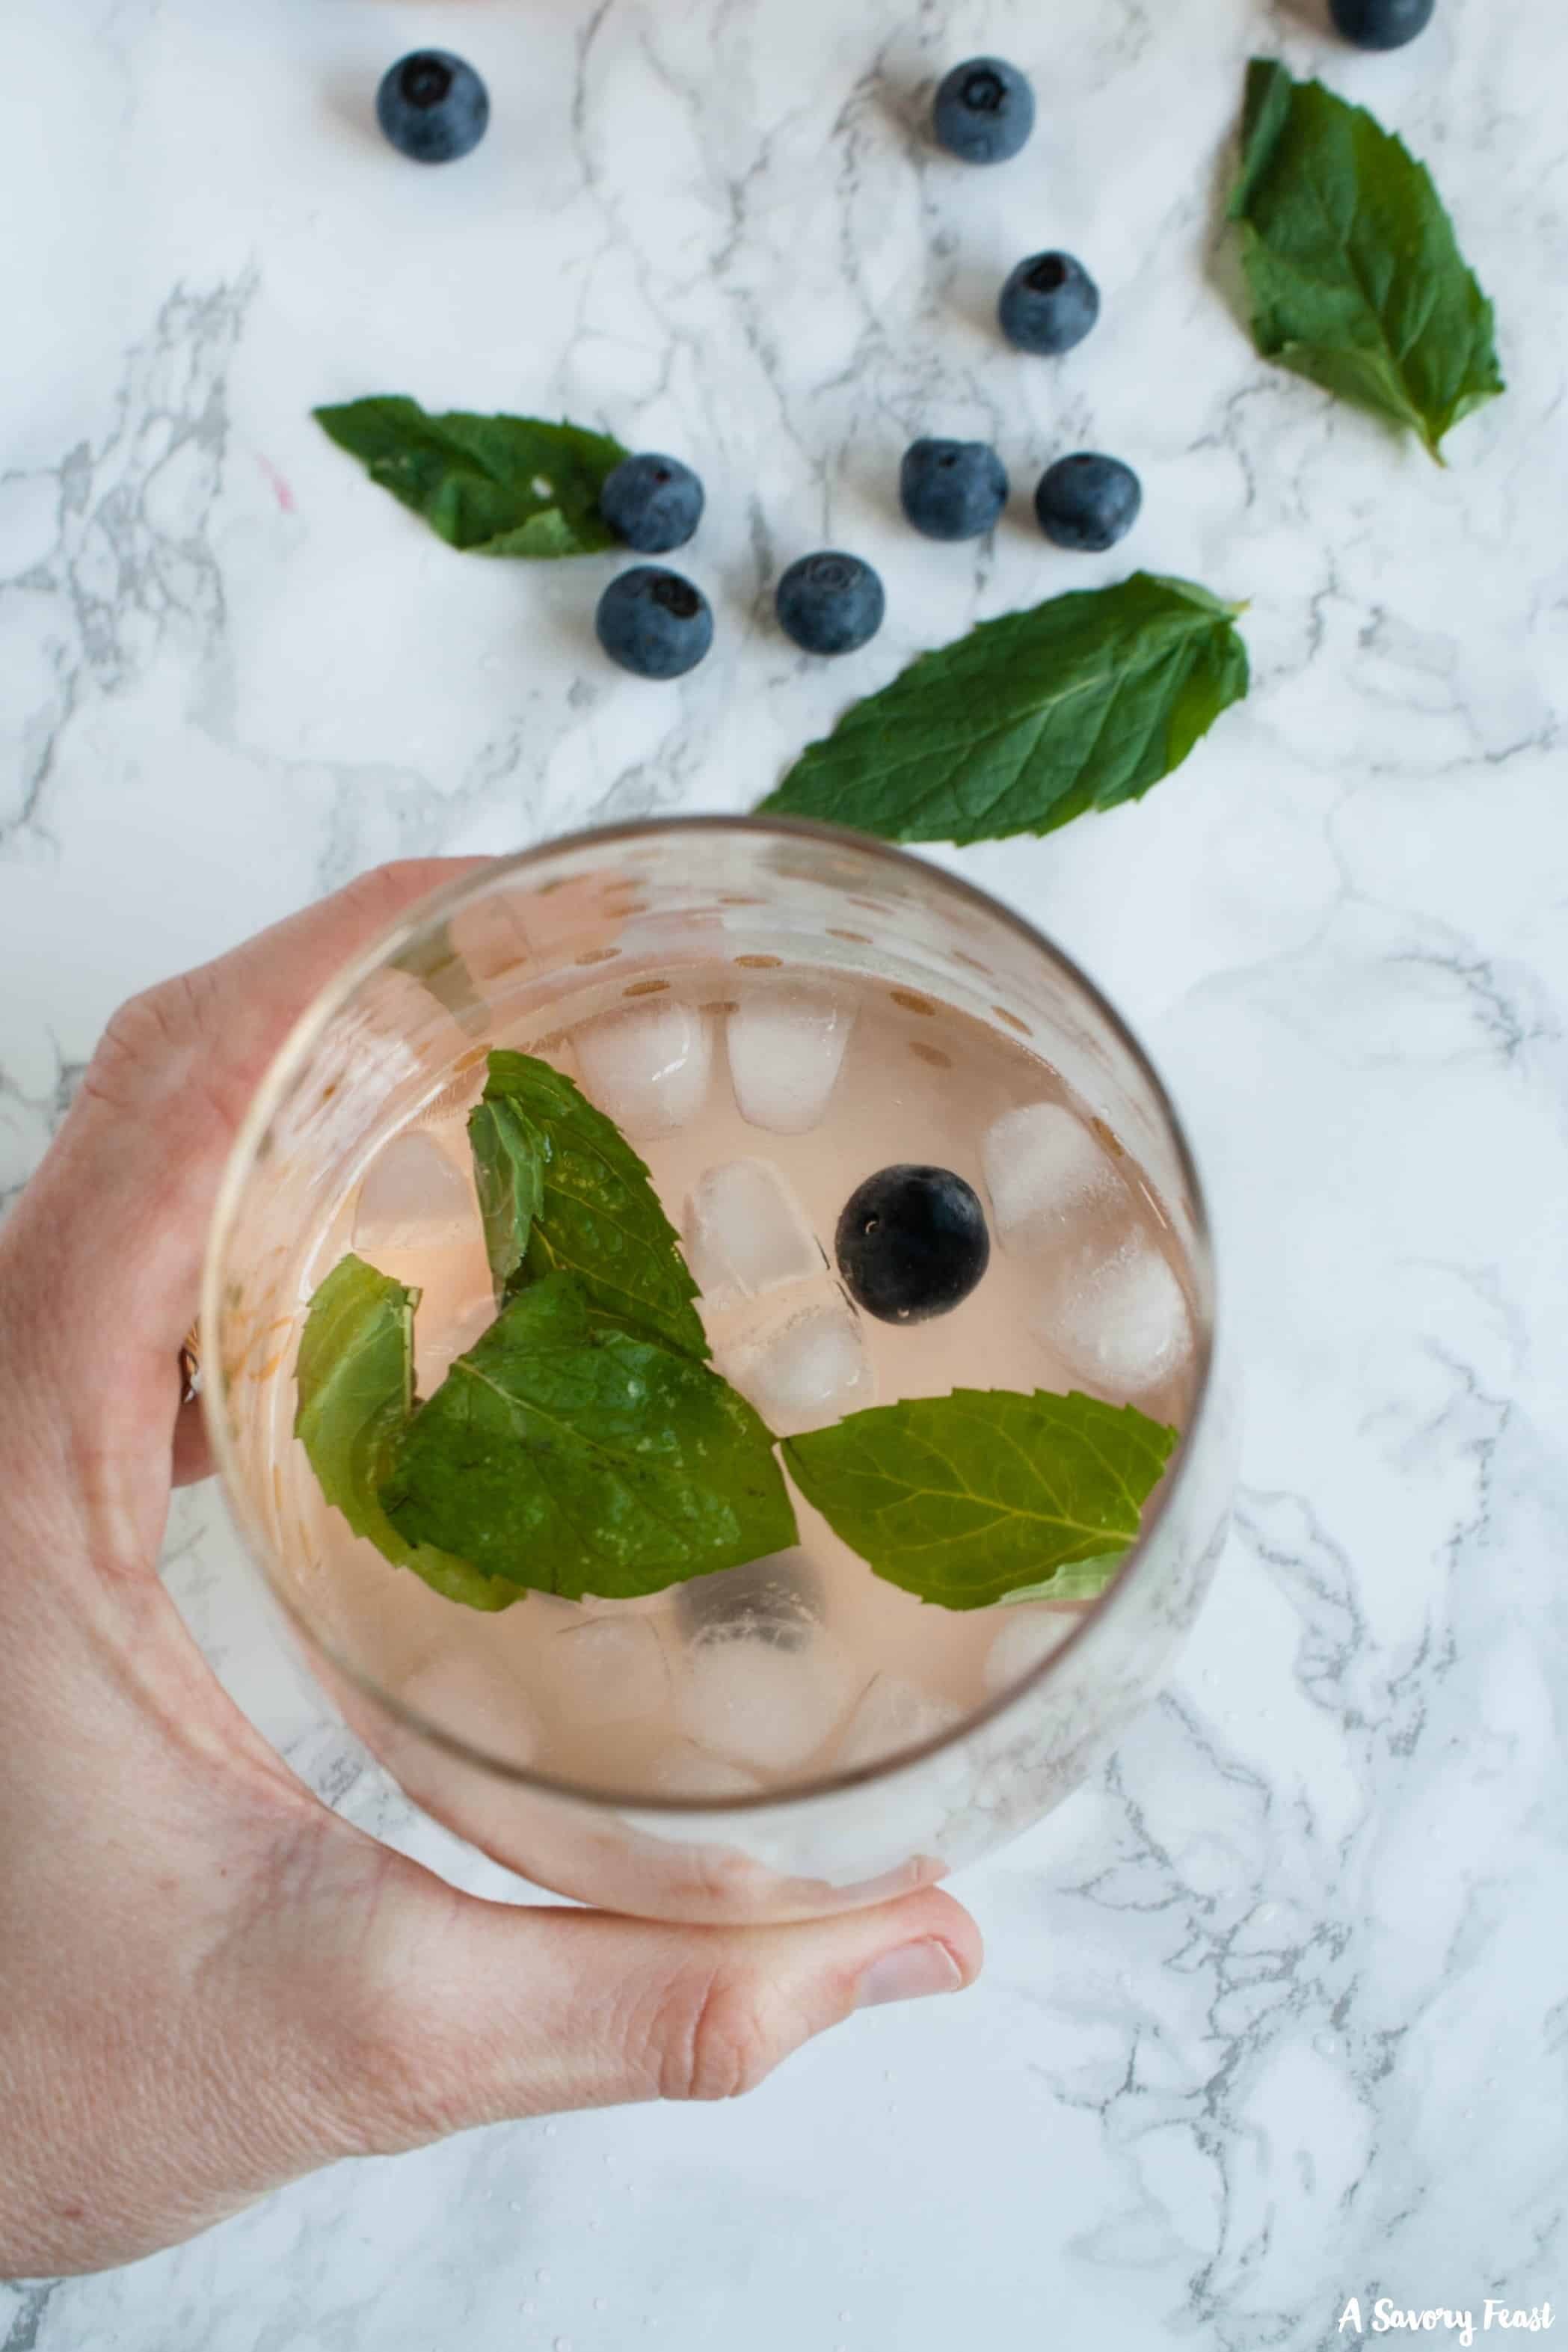 No summer party is complete without a pitcher of this Blueberry Mint Kombucha Sangria